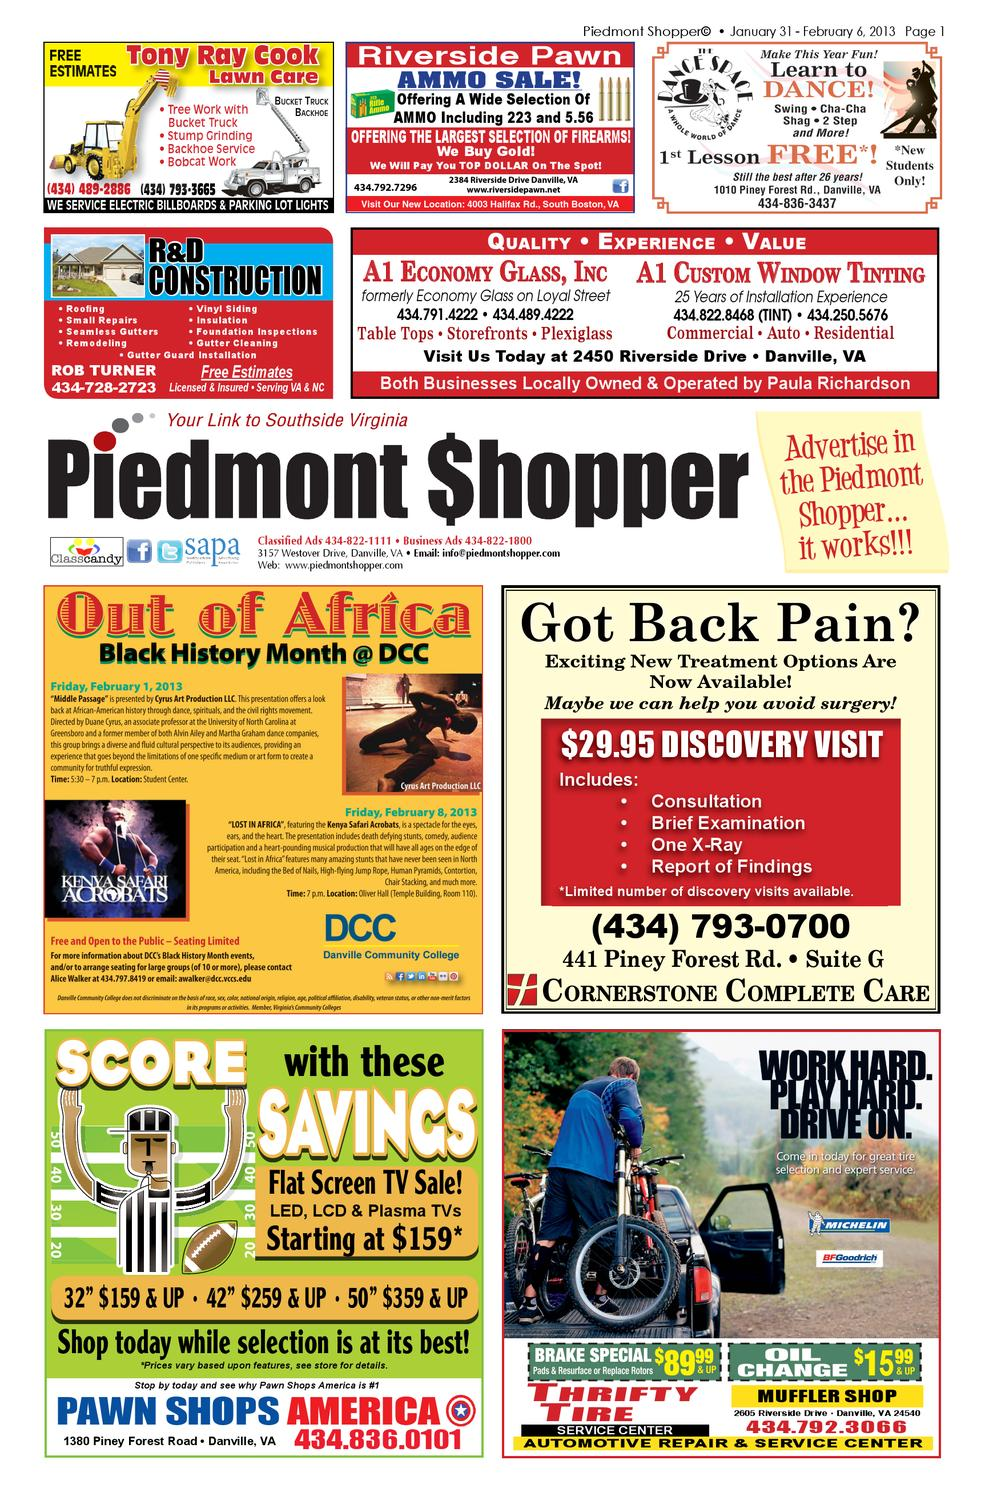 Piedmont Shopper January 31 2013 By Issuu 1991 Chevy S10 Obd1 Code Check Engine